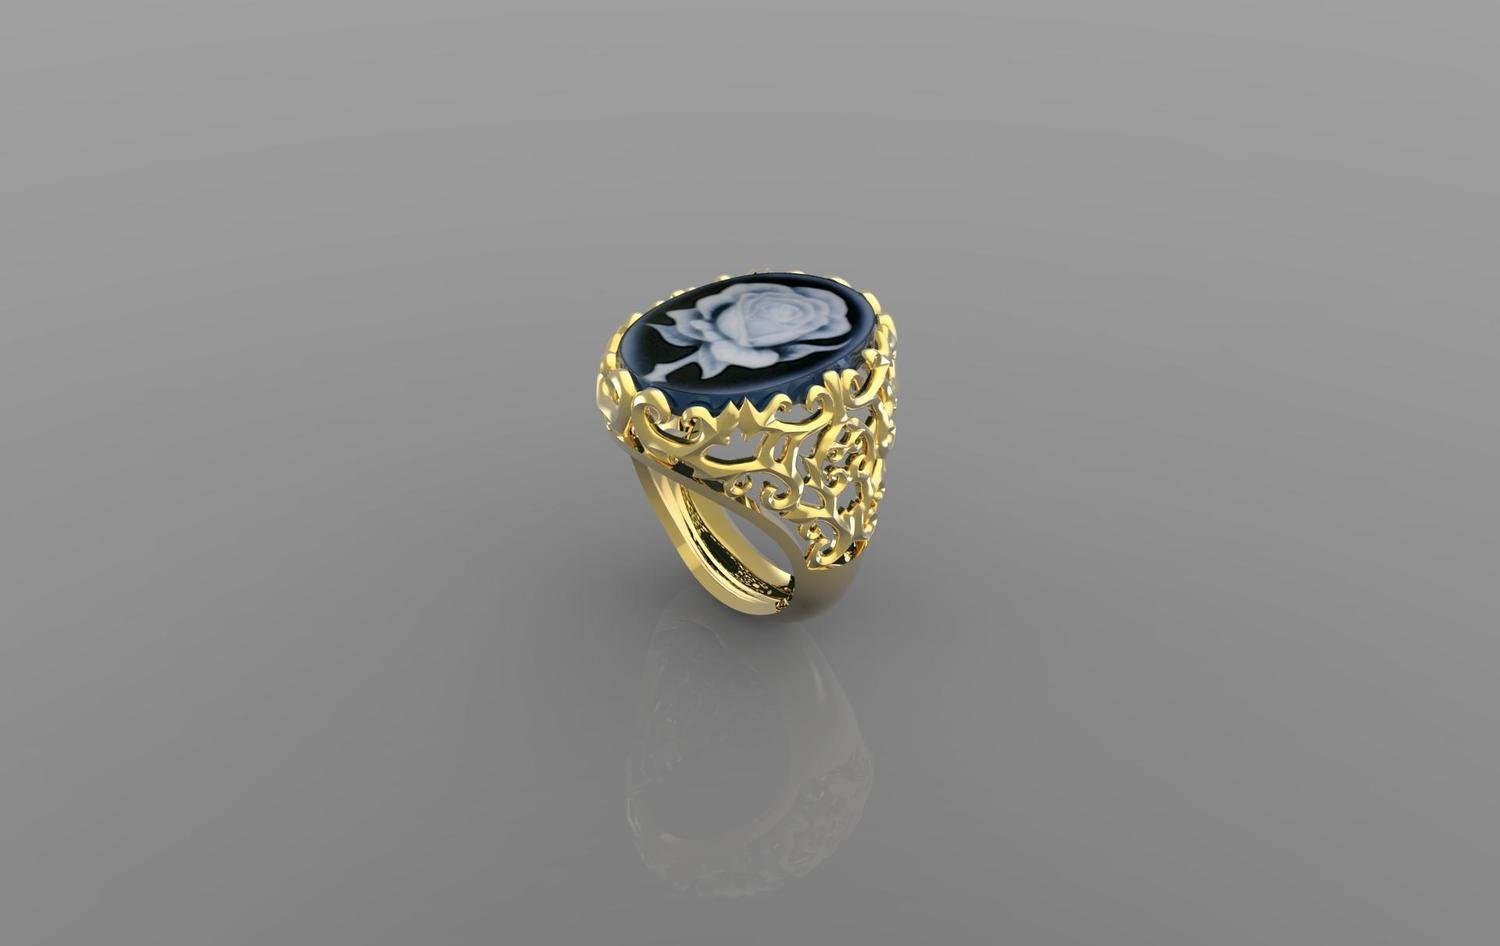 3D Jewelry Model of Cameo Ring